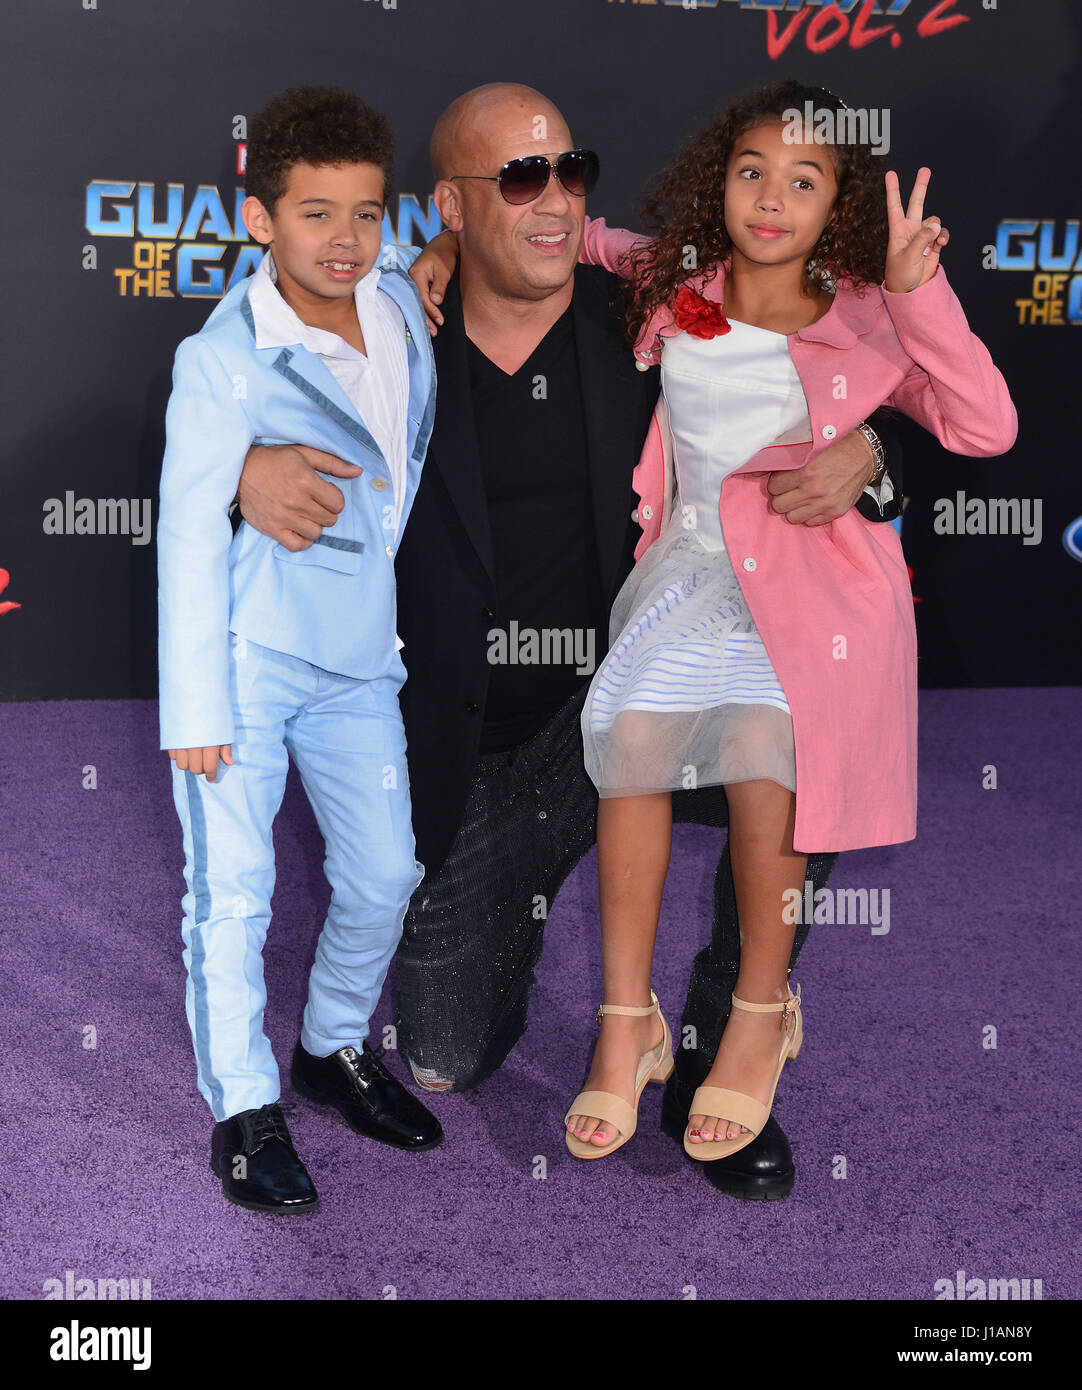 https://c8.alamy.com/comp/J1AN8Y/los-angeles-usa-18th-apr-2017-vin-diesel-daughter-hania-riley-sinclair-J1AN8Y.jpg Vin Diesel Daughter 2017